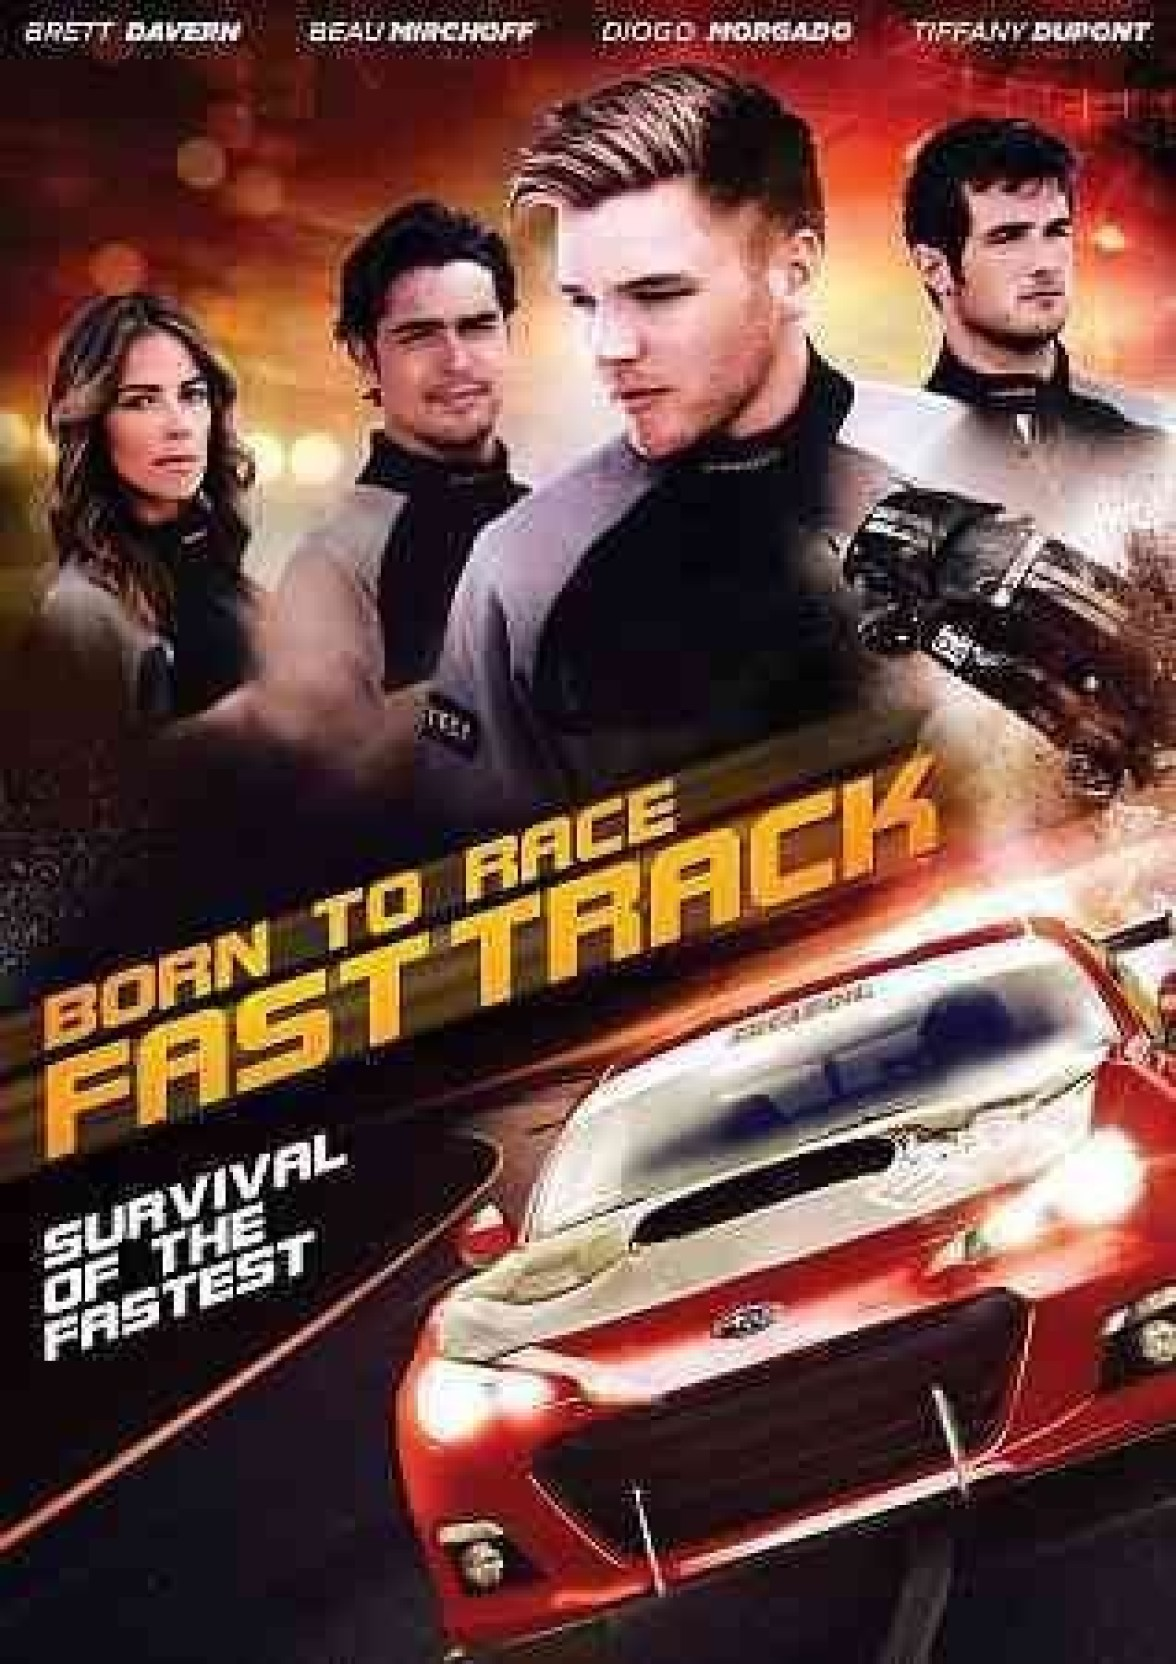 Born To Racefast Track Price In India Buy Name Of The Subaru Race Add Cart